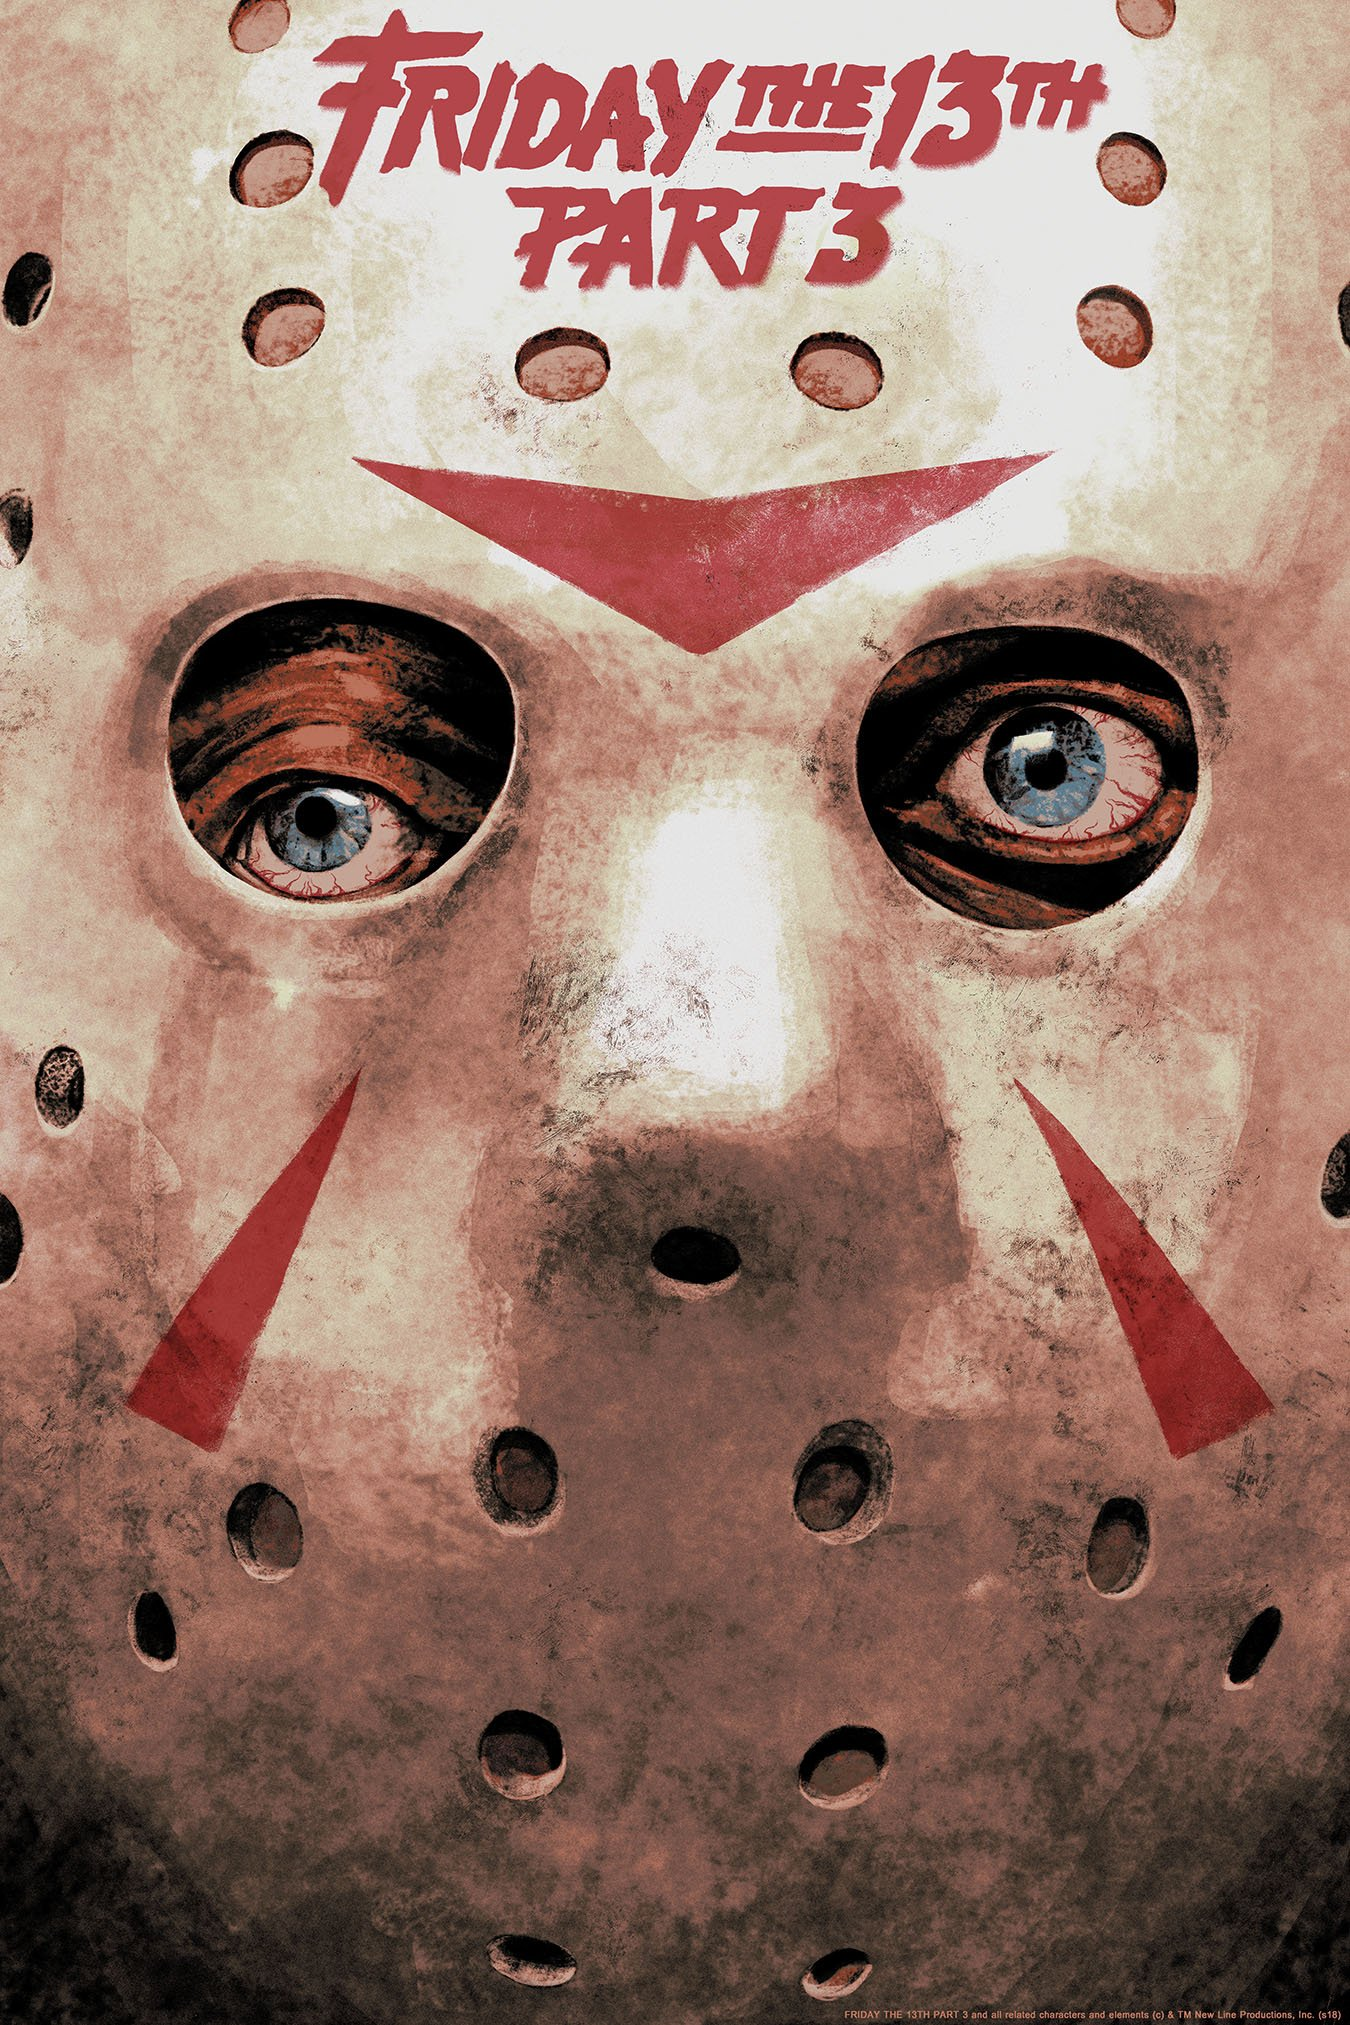 Friday the 13th Part 3 Hans Woody poster